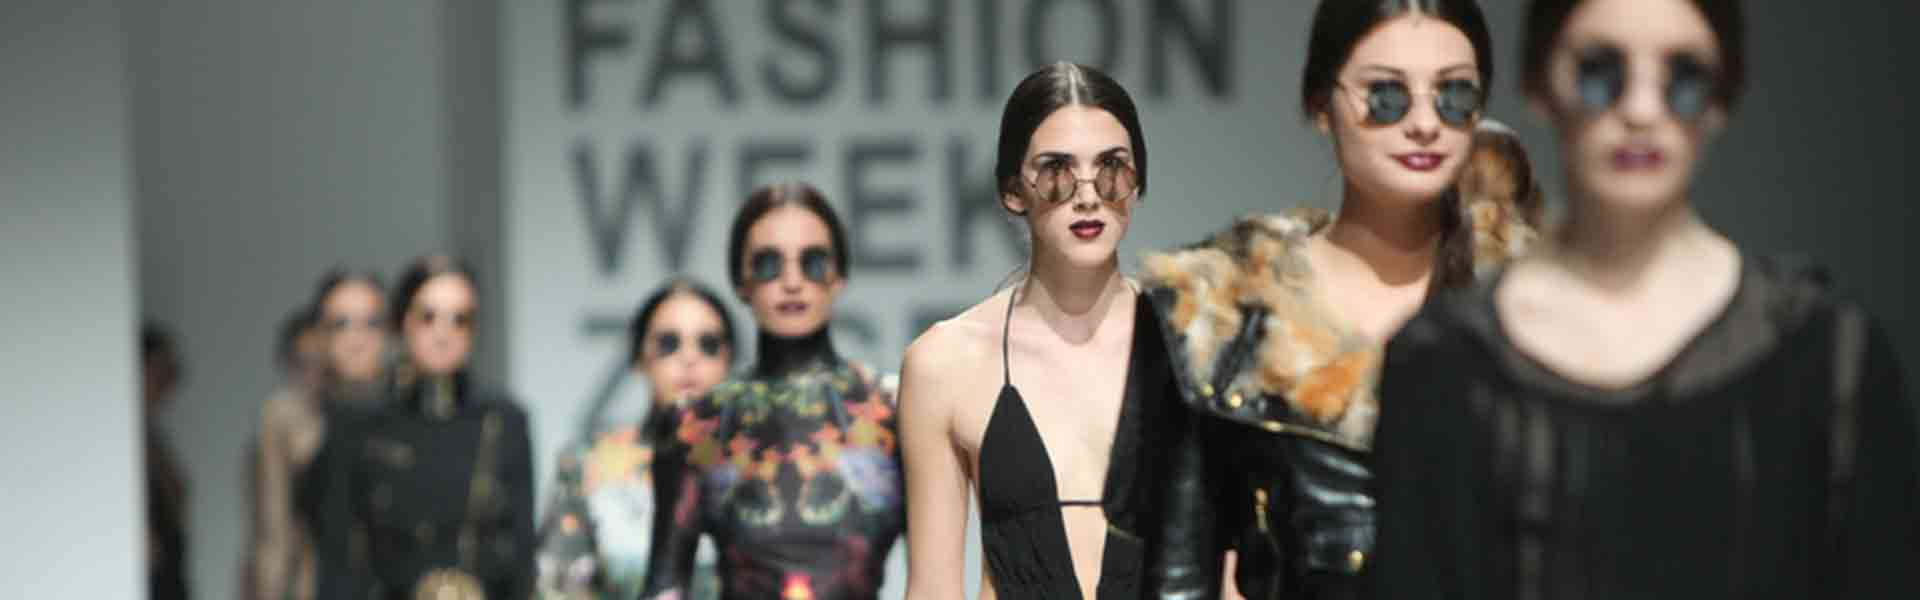 Fashion Week – Turning Challenges Into Opportunities for Businesses